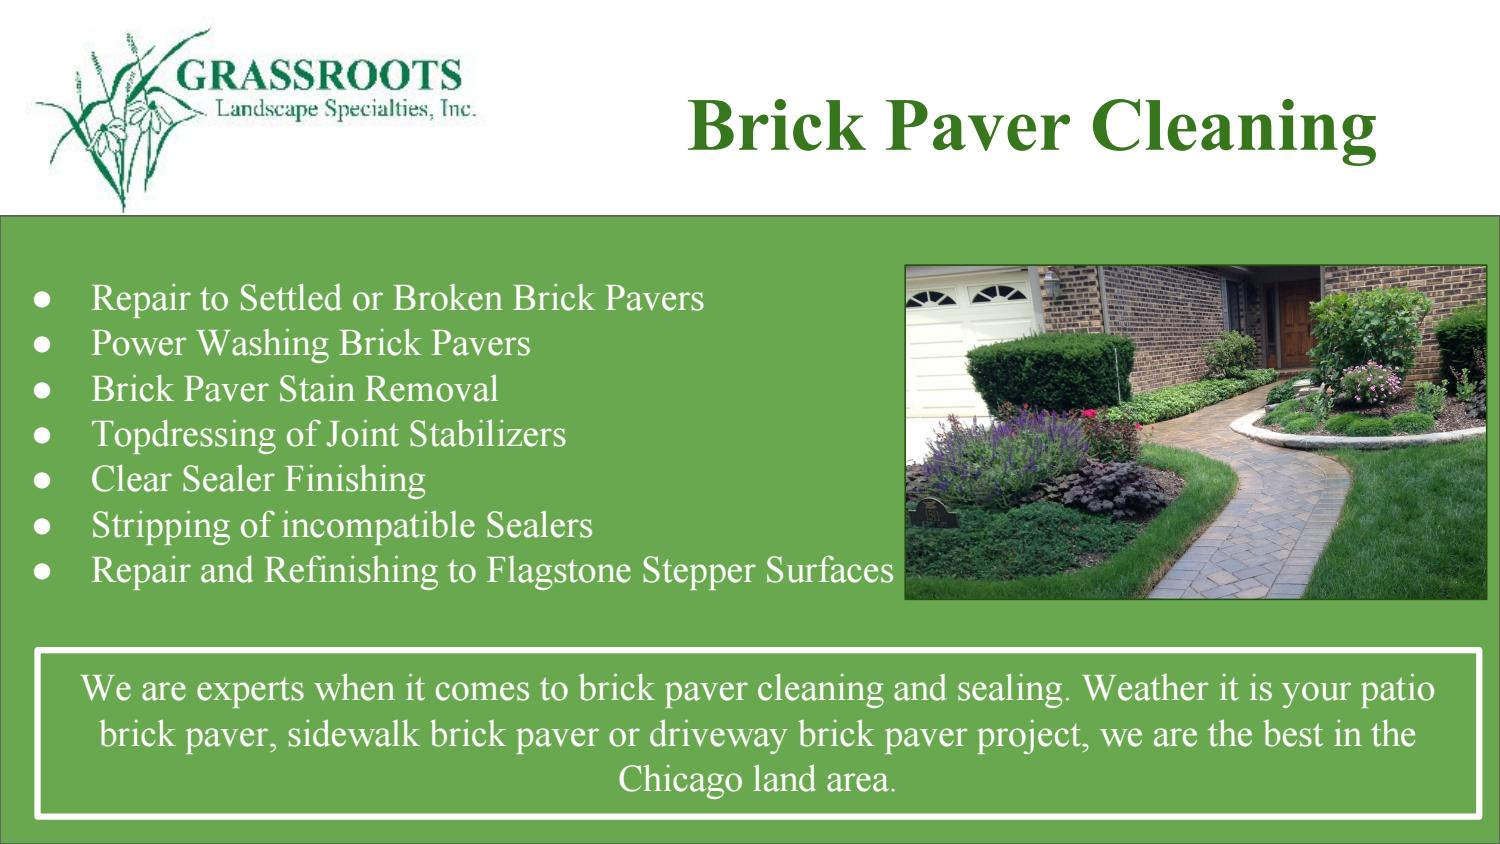 Brick Paver Cleaning and Sealing Company by grlandscapeservices - issuu